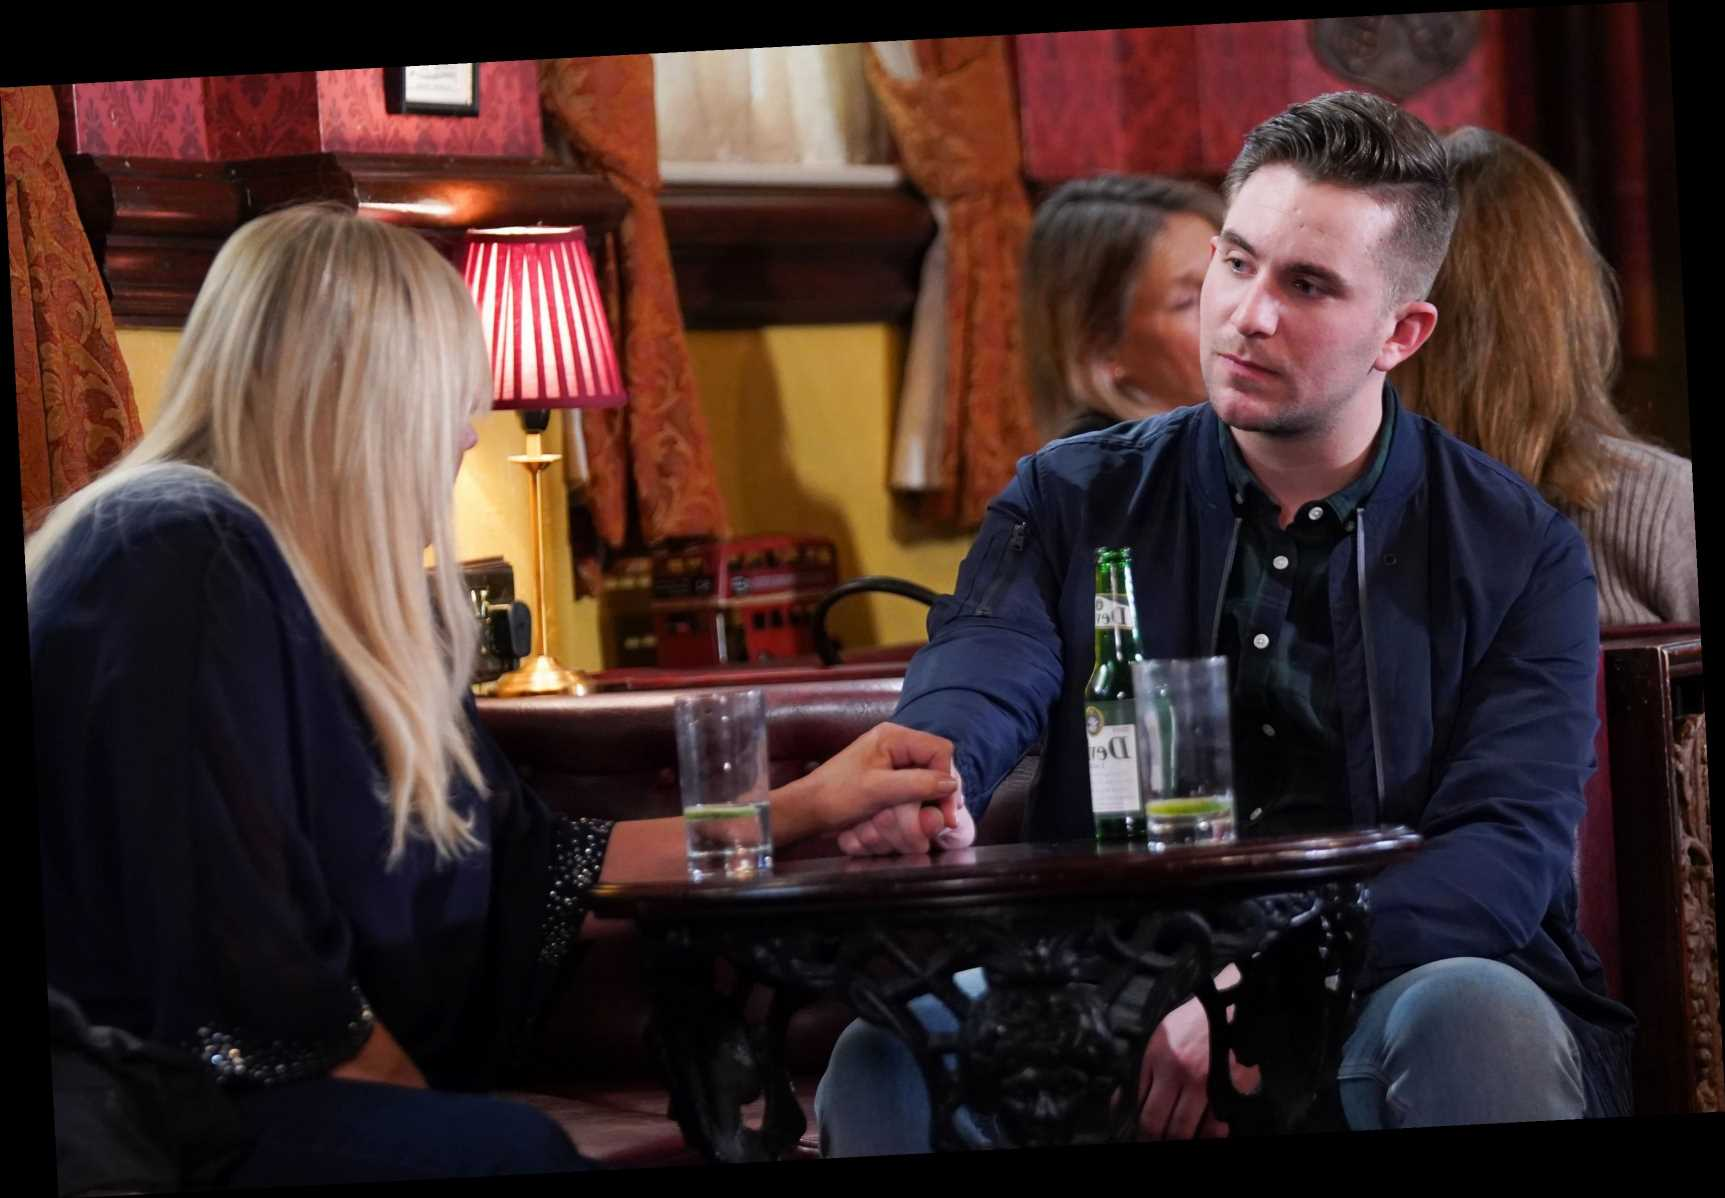 EastEnders spoilers: Callum Highway asks Sharon for advice about dating Ben Mitchell